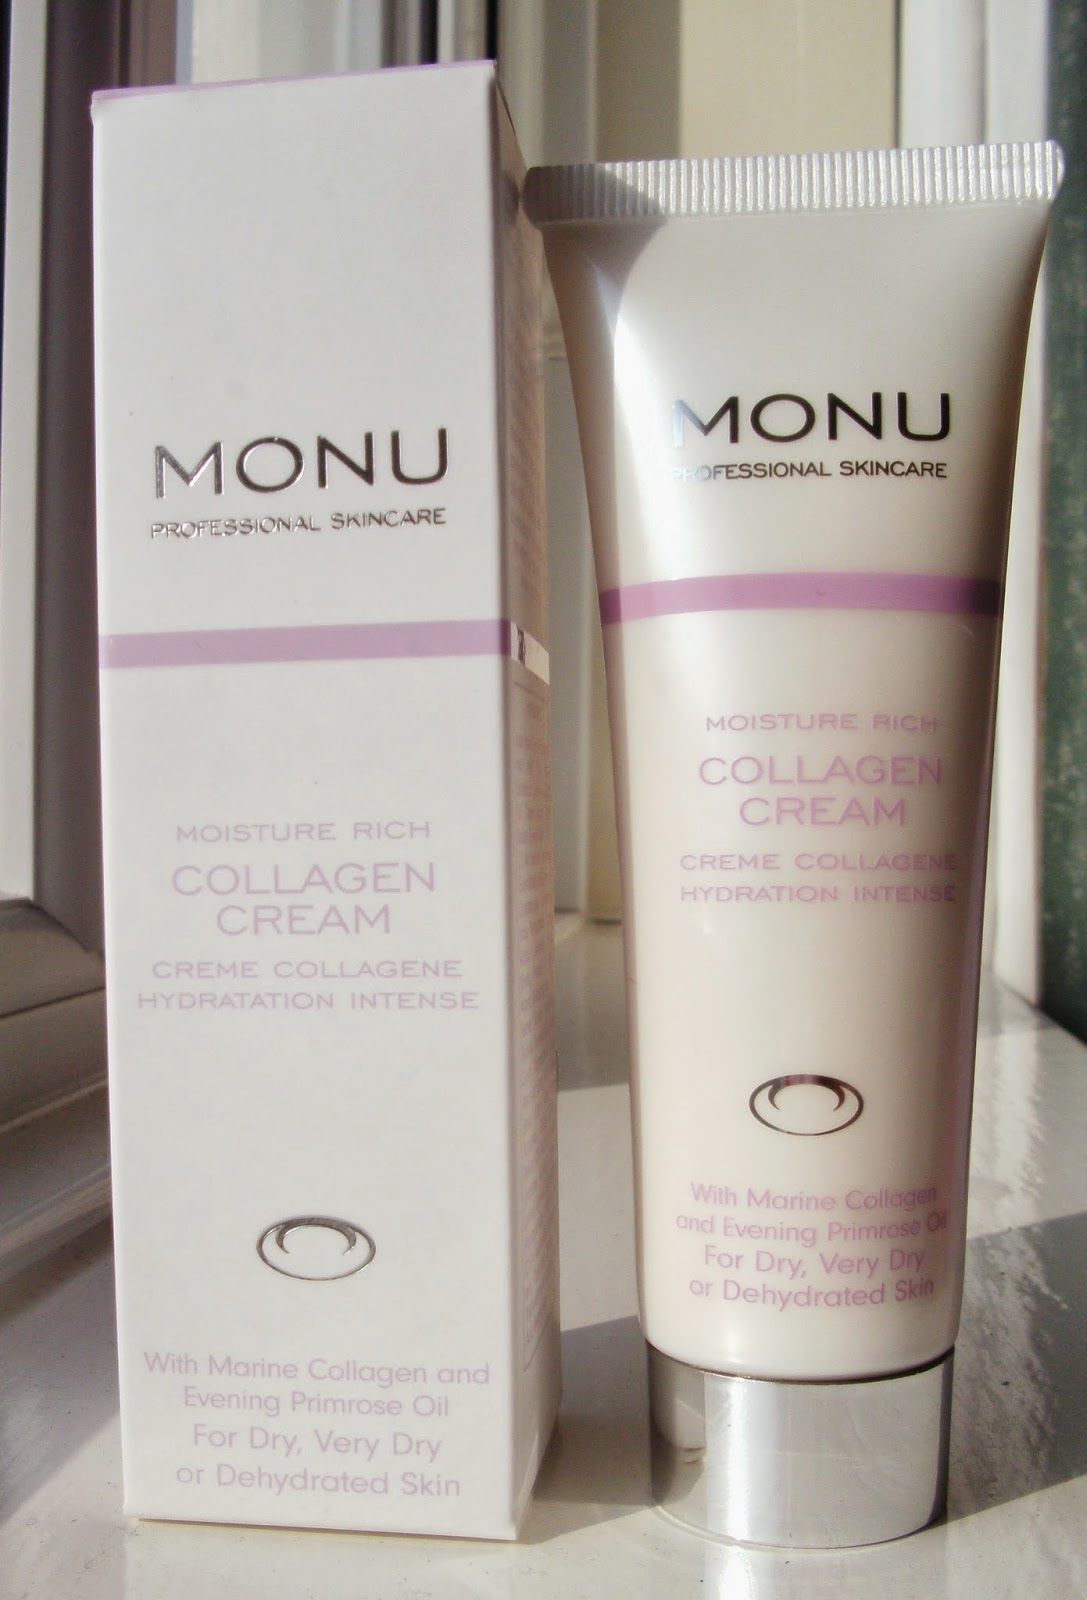 MONU Moisture Rich Collagen Cream Review